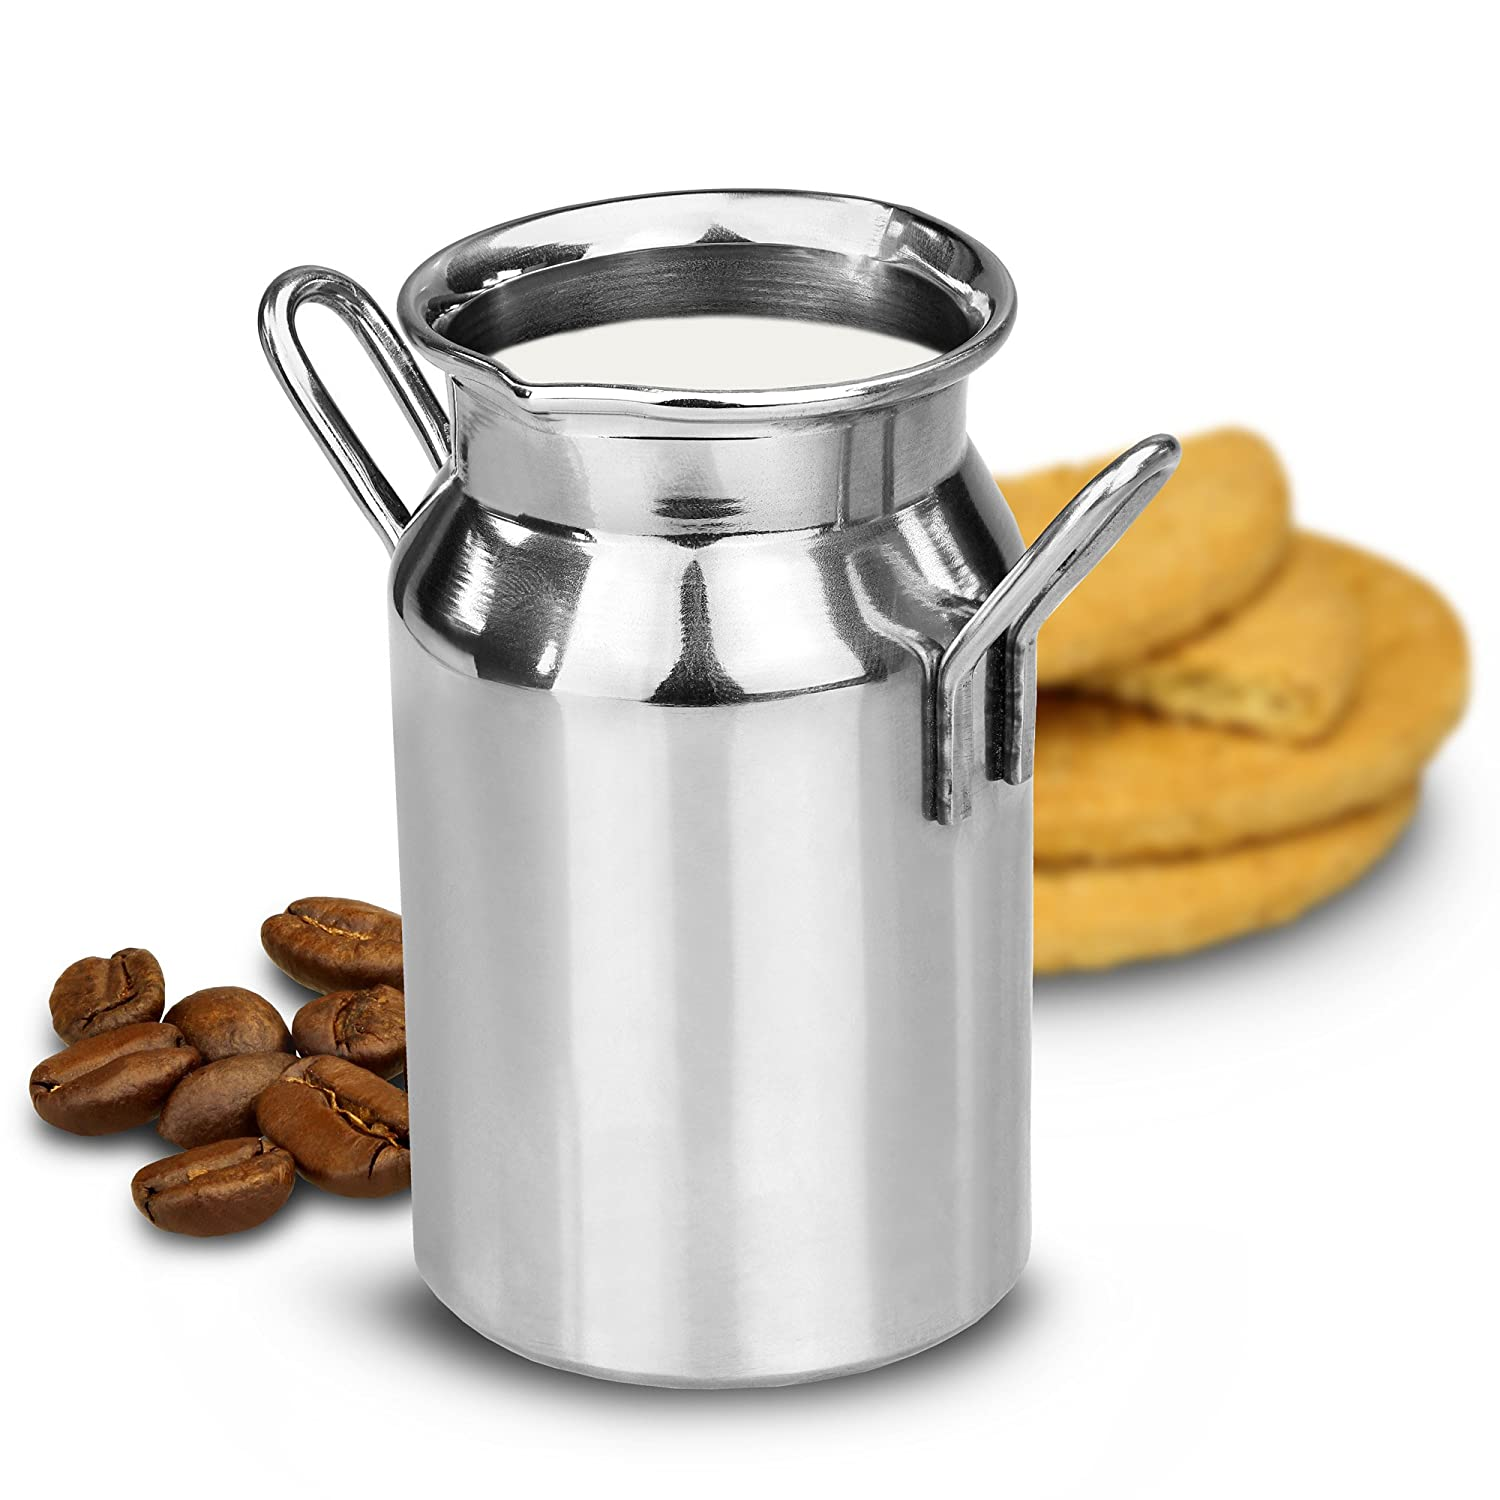 drinkstuff Stainless Steel Mini Milk Churn 4.75oz / 135ml - Novelty Cream Jug for Tea & Coffee Service